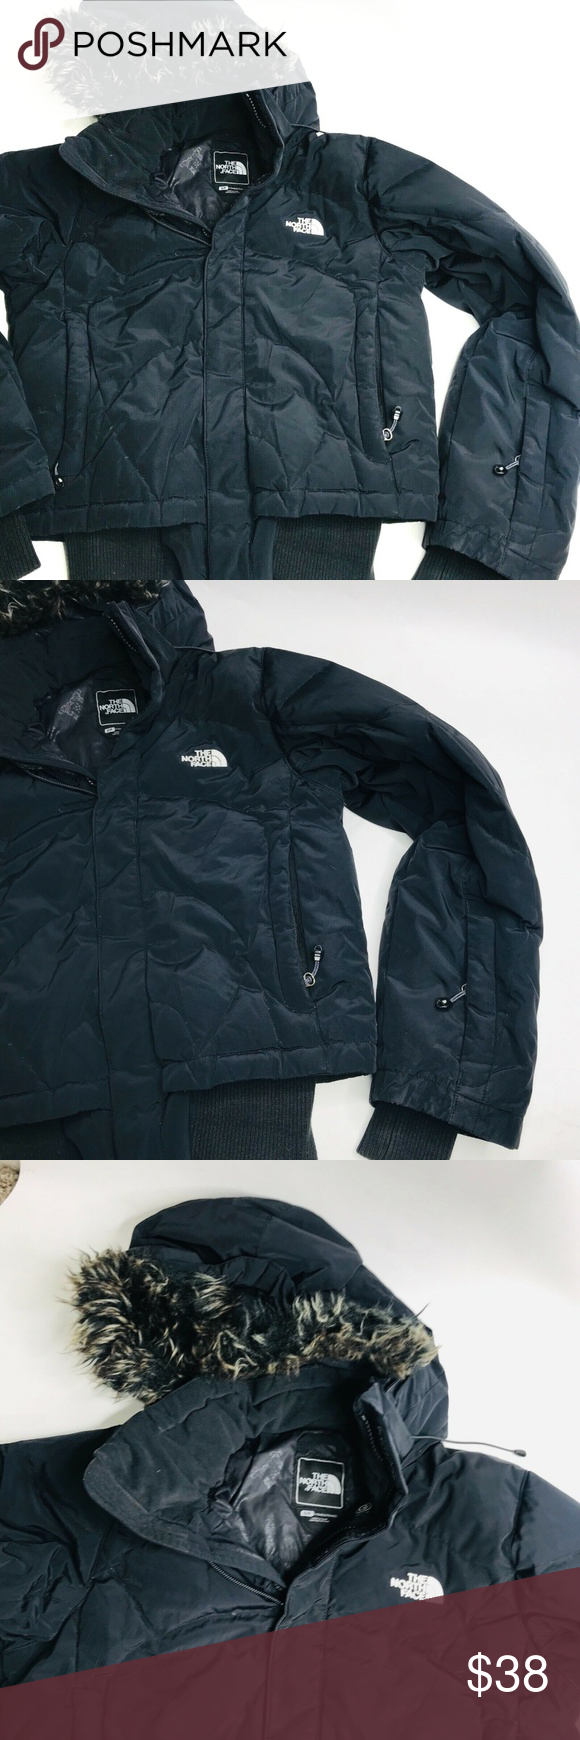 The North Face Women Black Puffer Hood Jacket Sz S The